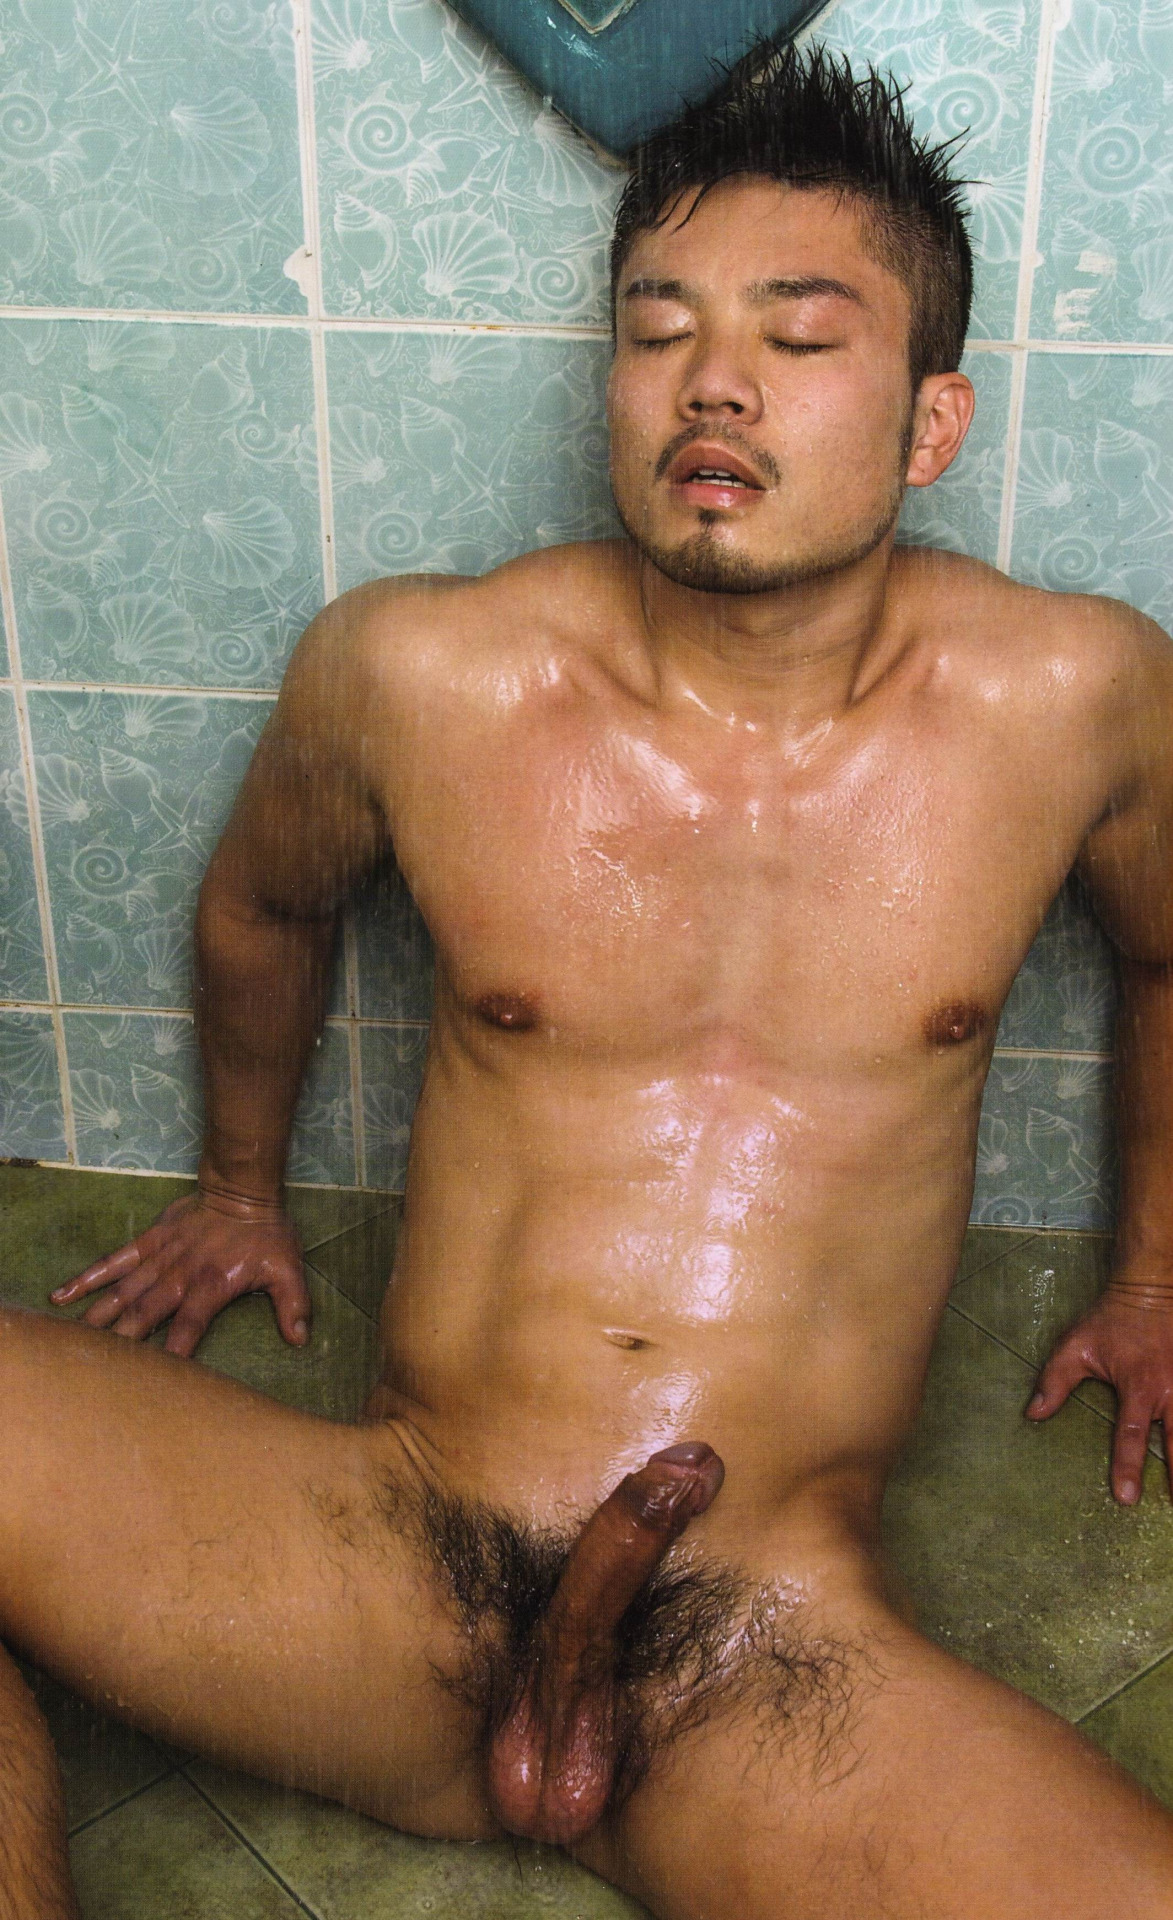 Asian male nude gay